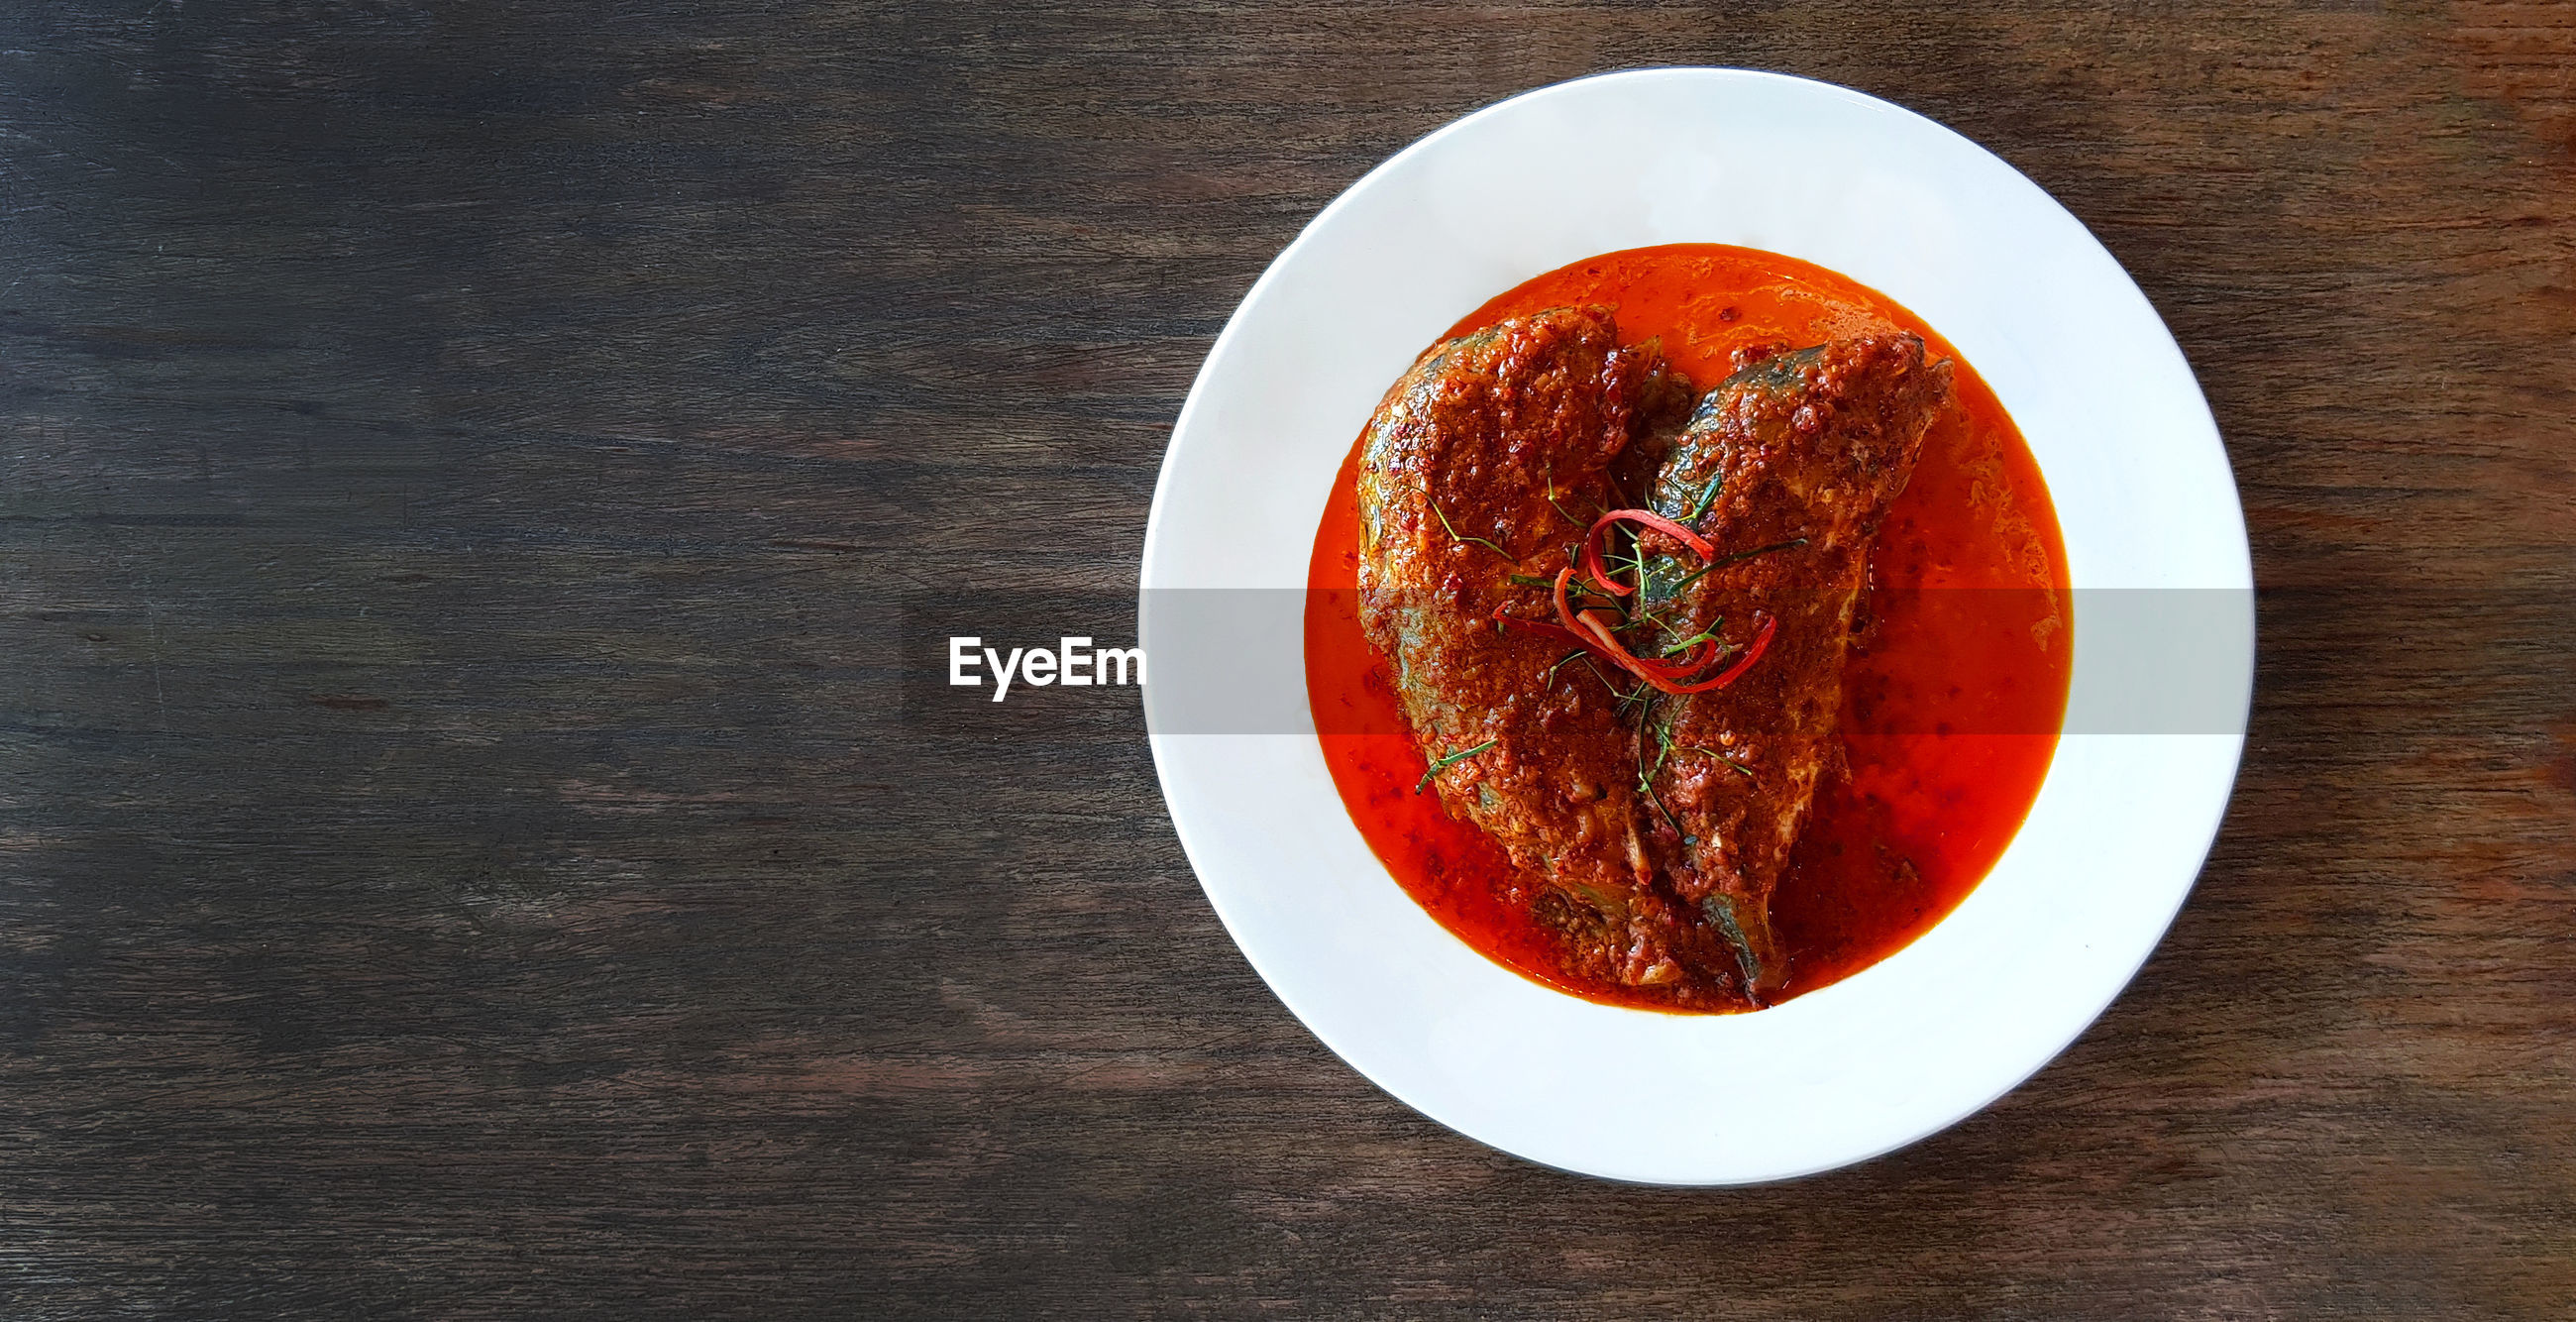 High angle view of spicy red soup with fish served on table with copy space